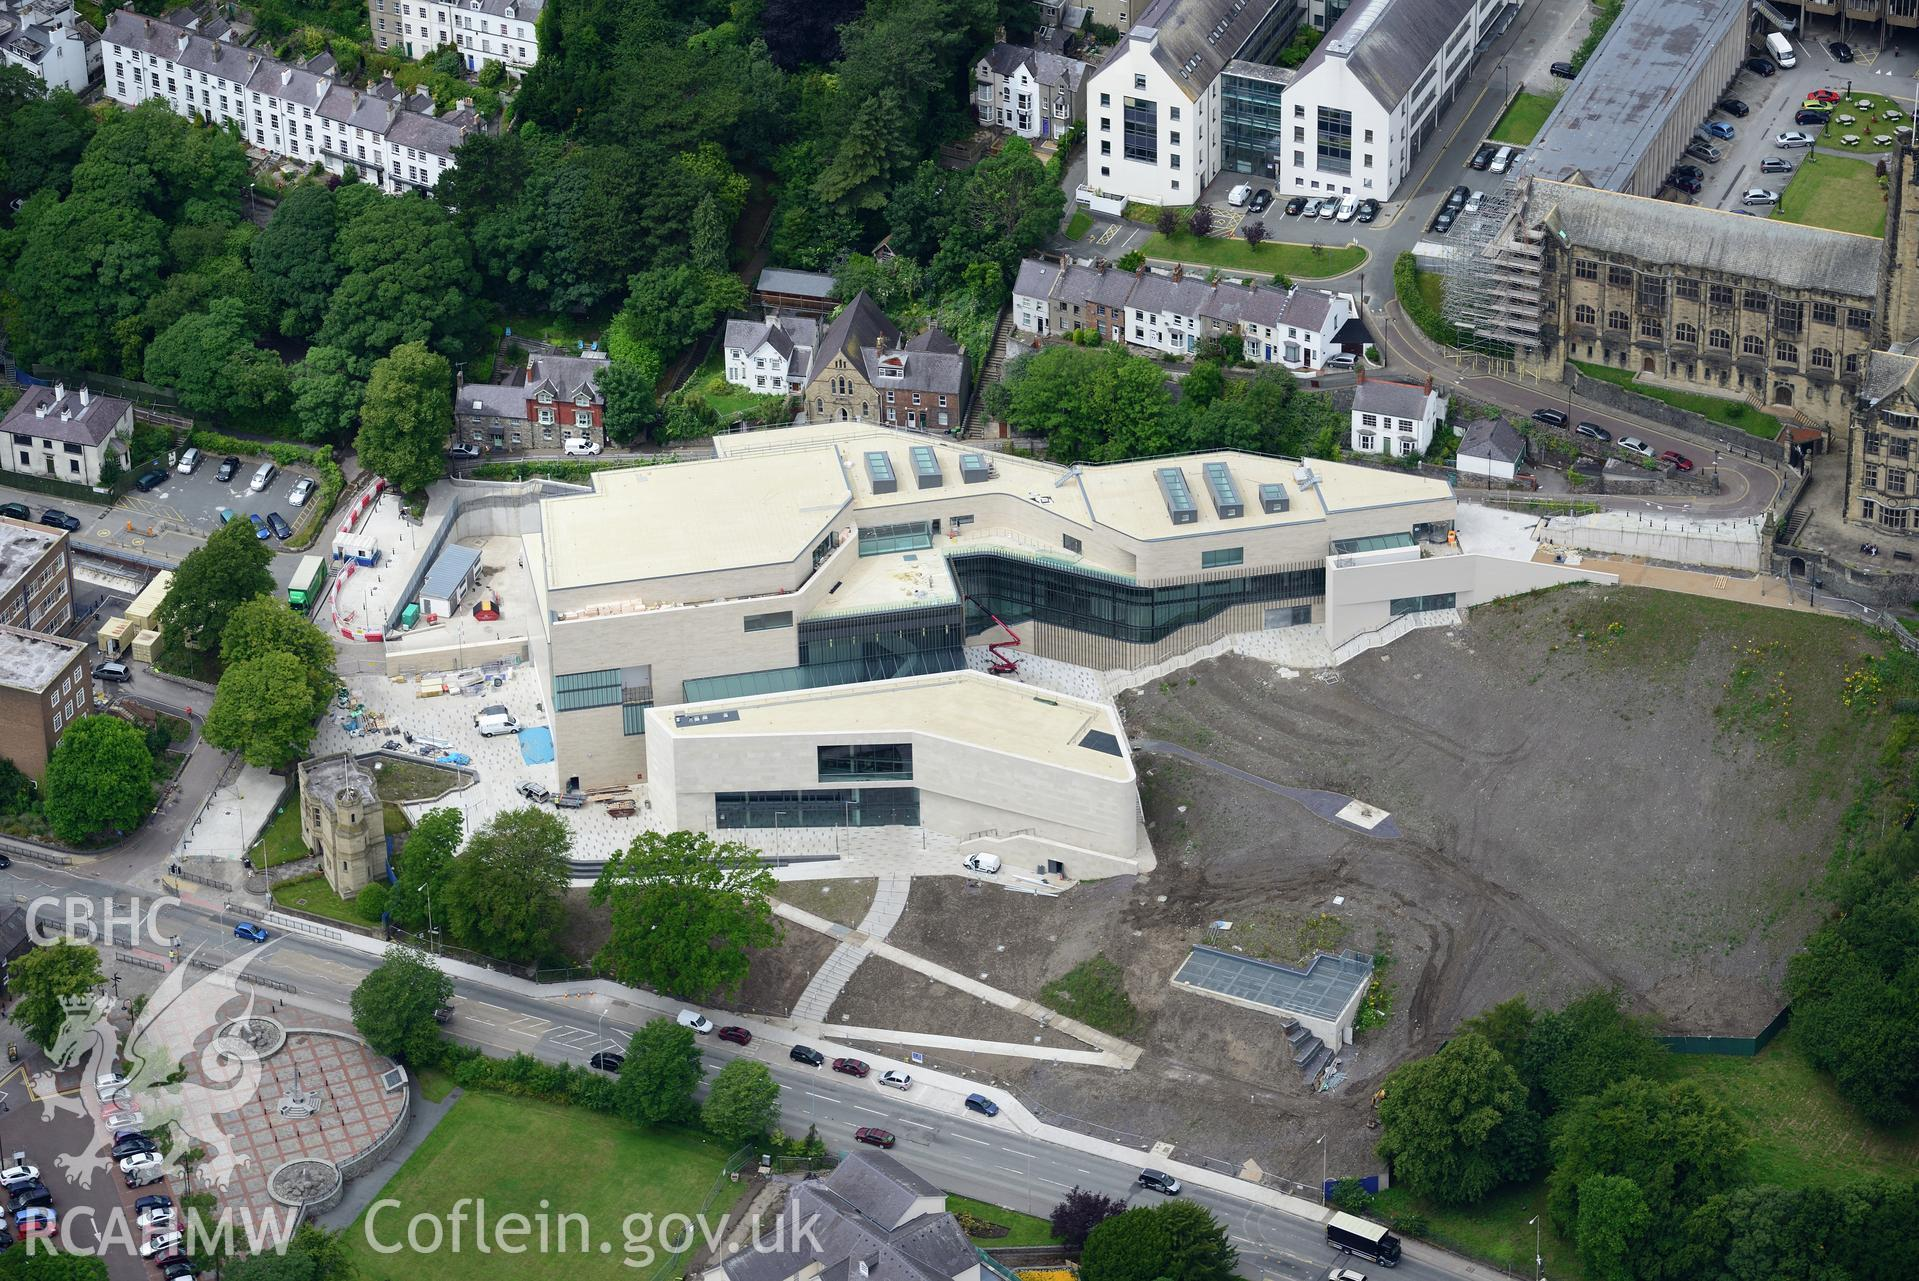 Bangor University, Theatr Gwynedd(demolished),Pontio, town hall, library, medieval church site & war memorial. Oblique aerial photograph taken during the Royal Commission's programme of archaeological aerial reconnaissance by Toby Driver on 30th July 2015.